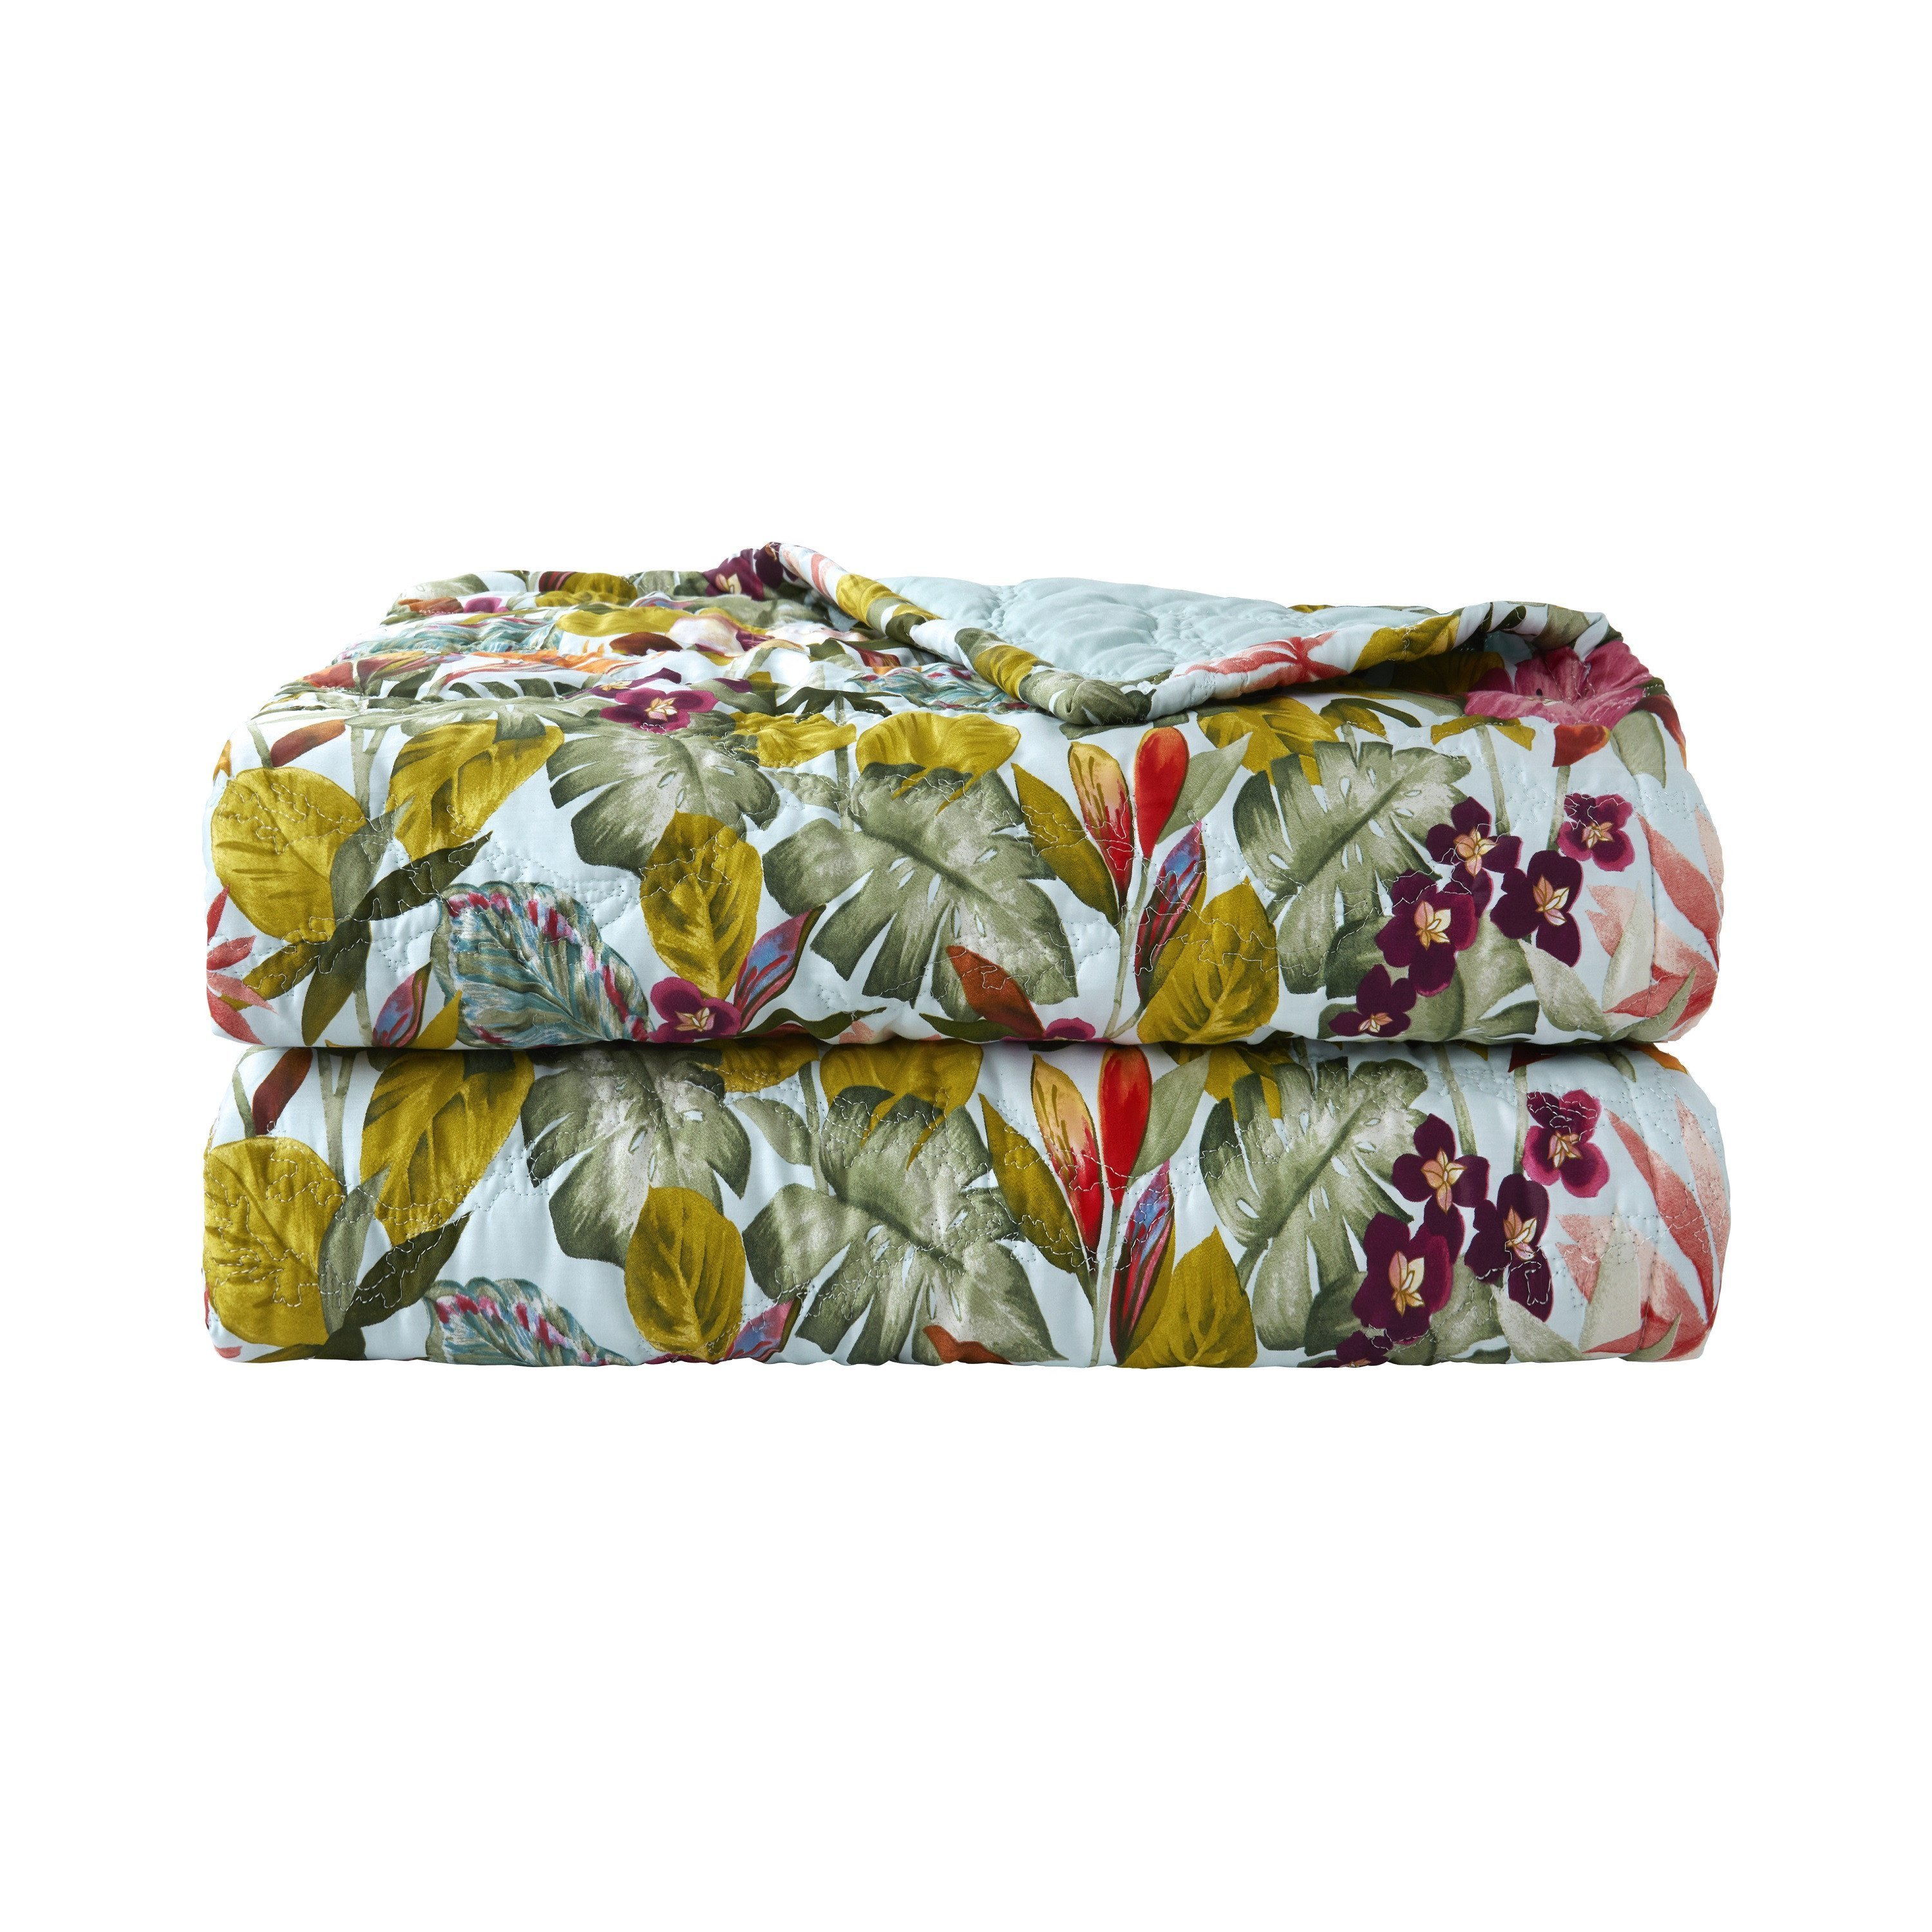 UTOPIA Quilted Bed Spread